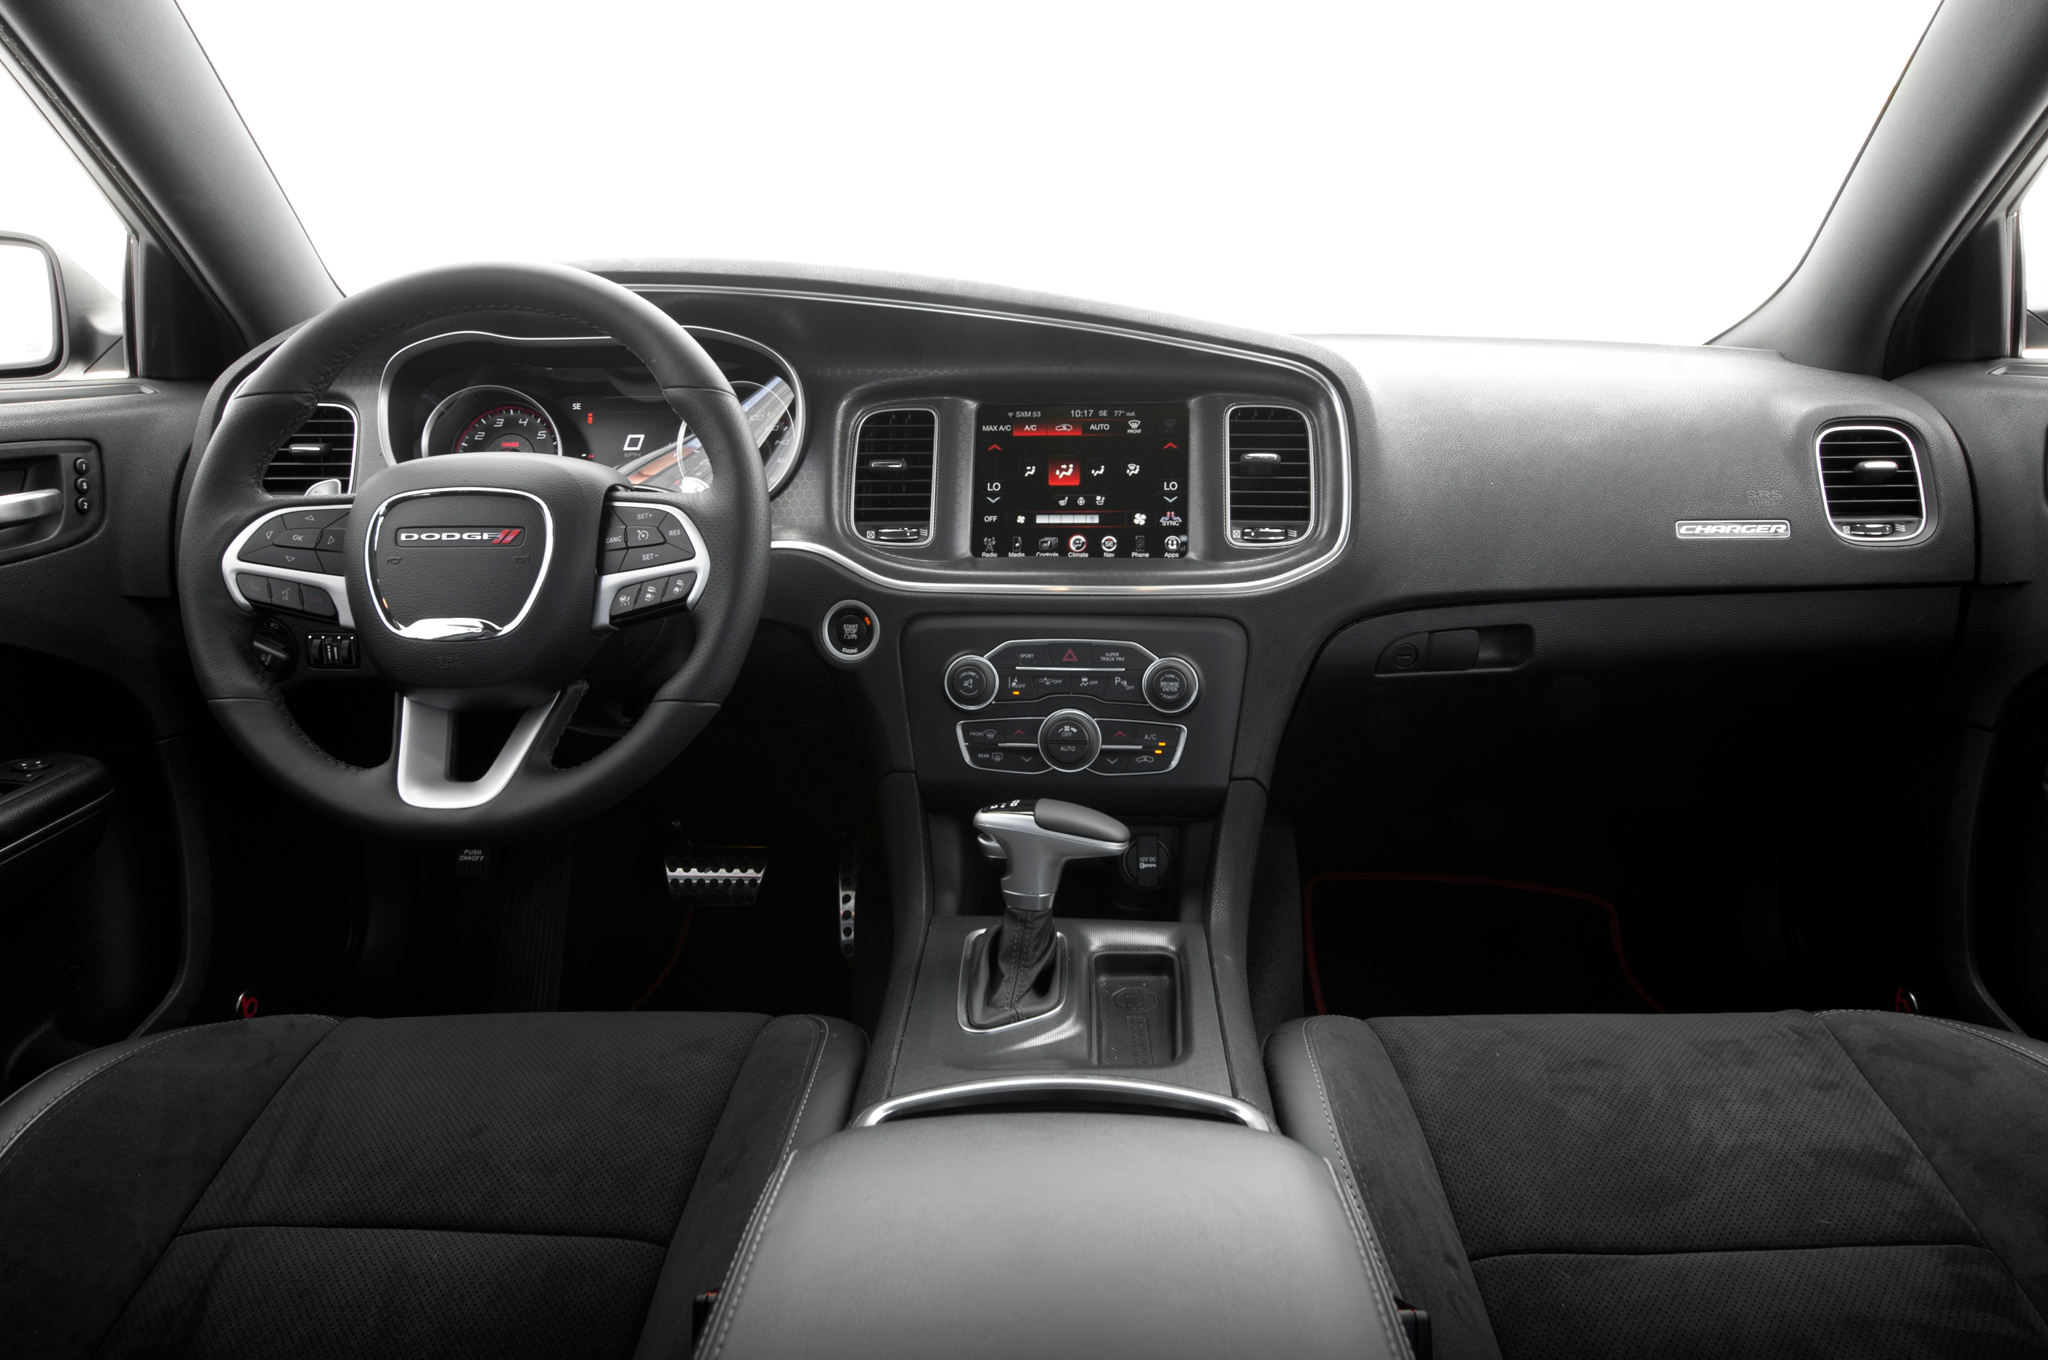 2015 Dodge Charger Dashboard Details (Photo 37 of 39)